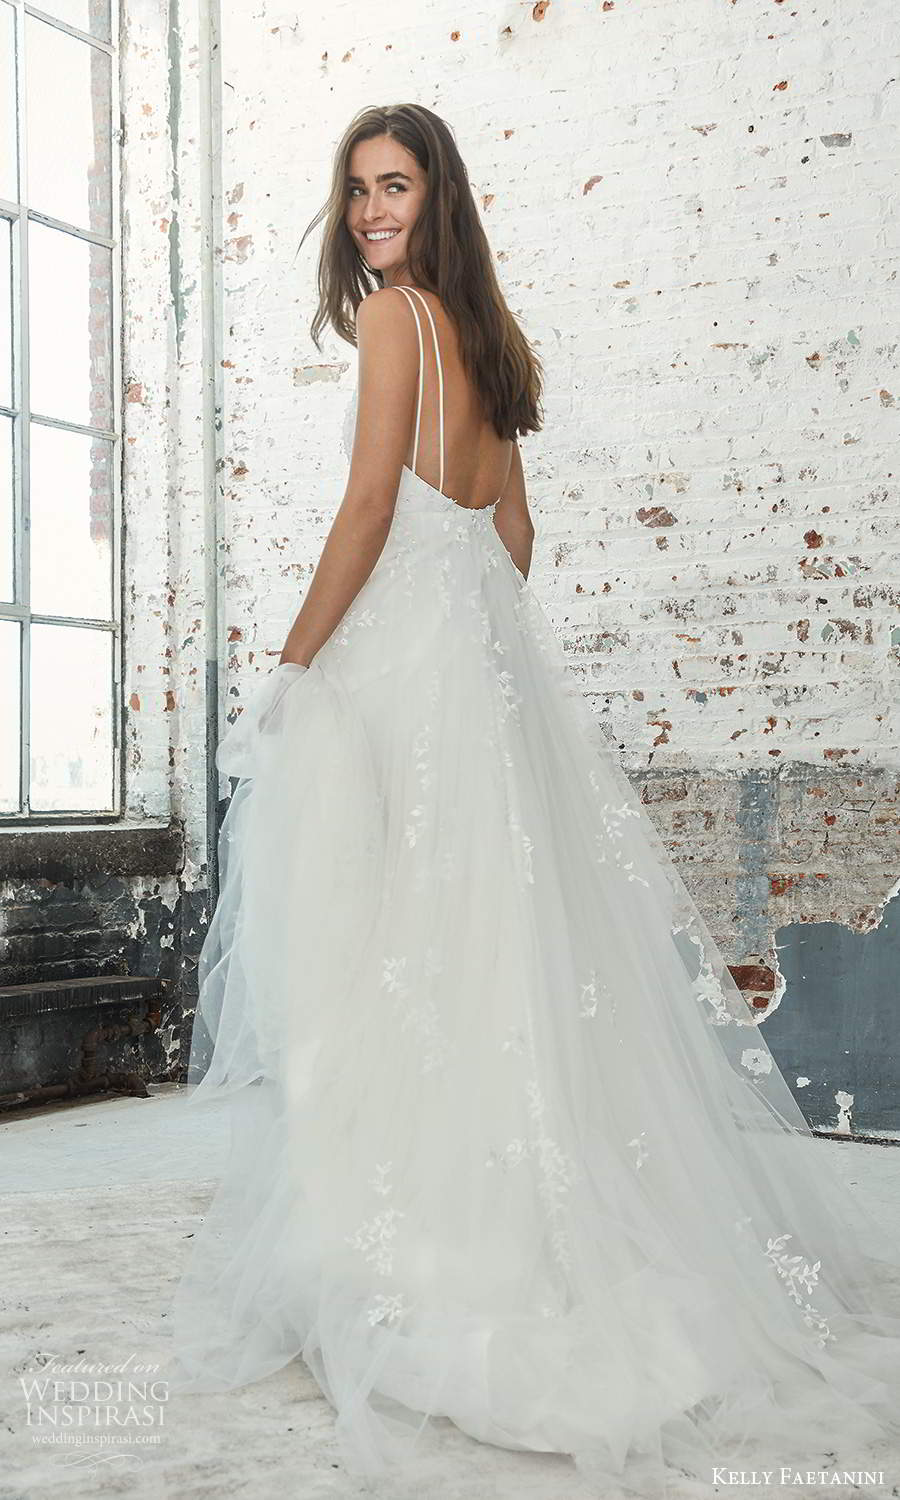 kelly faetanini 2021 bridal sleeveless double straps scoop neckline embellished bodice a line ball gown wedding dress chapel train (20) bv